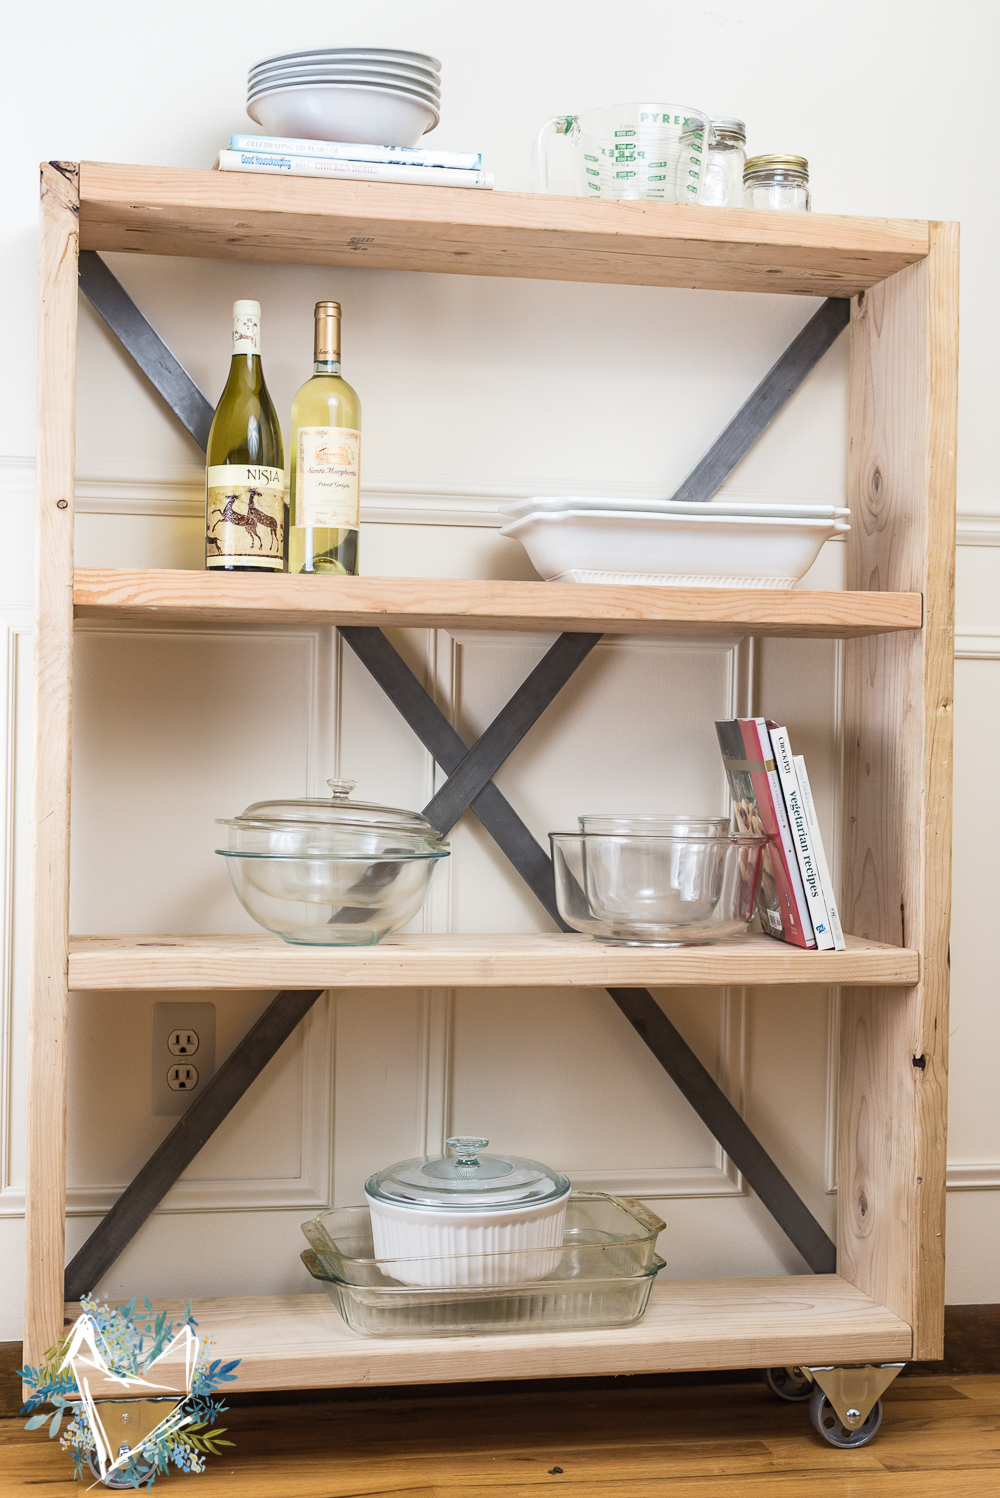 diy-industrial-famhouse-pantry-shelf-16